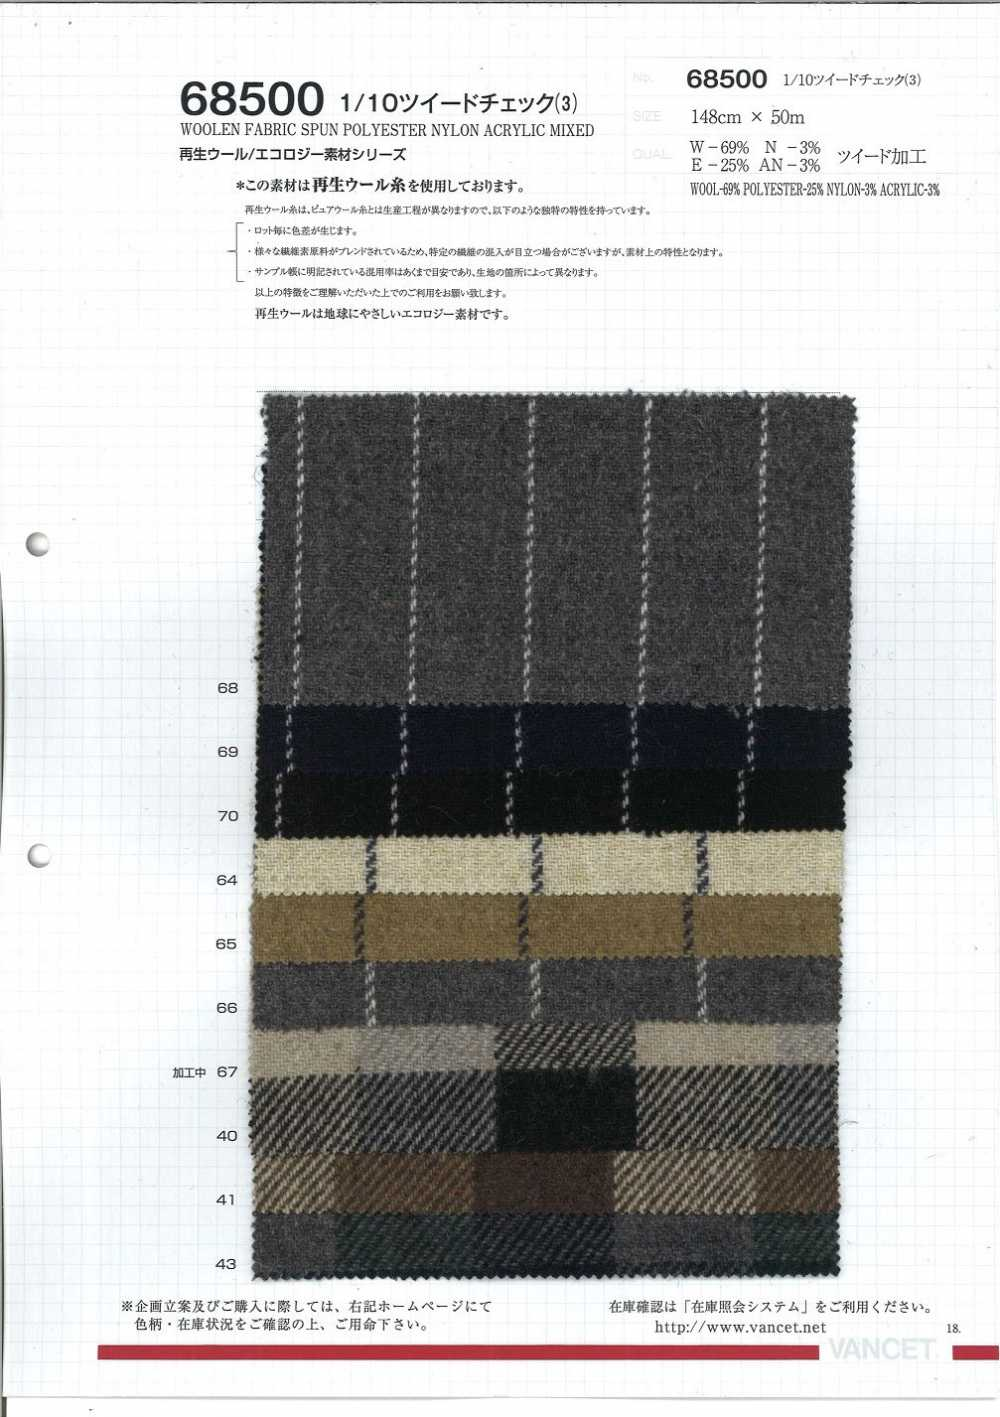 68500-1 1/10 Tweed Check [using Recycled Wool Thread][Textile / Fabric] VANCET Sub Photo